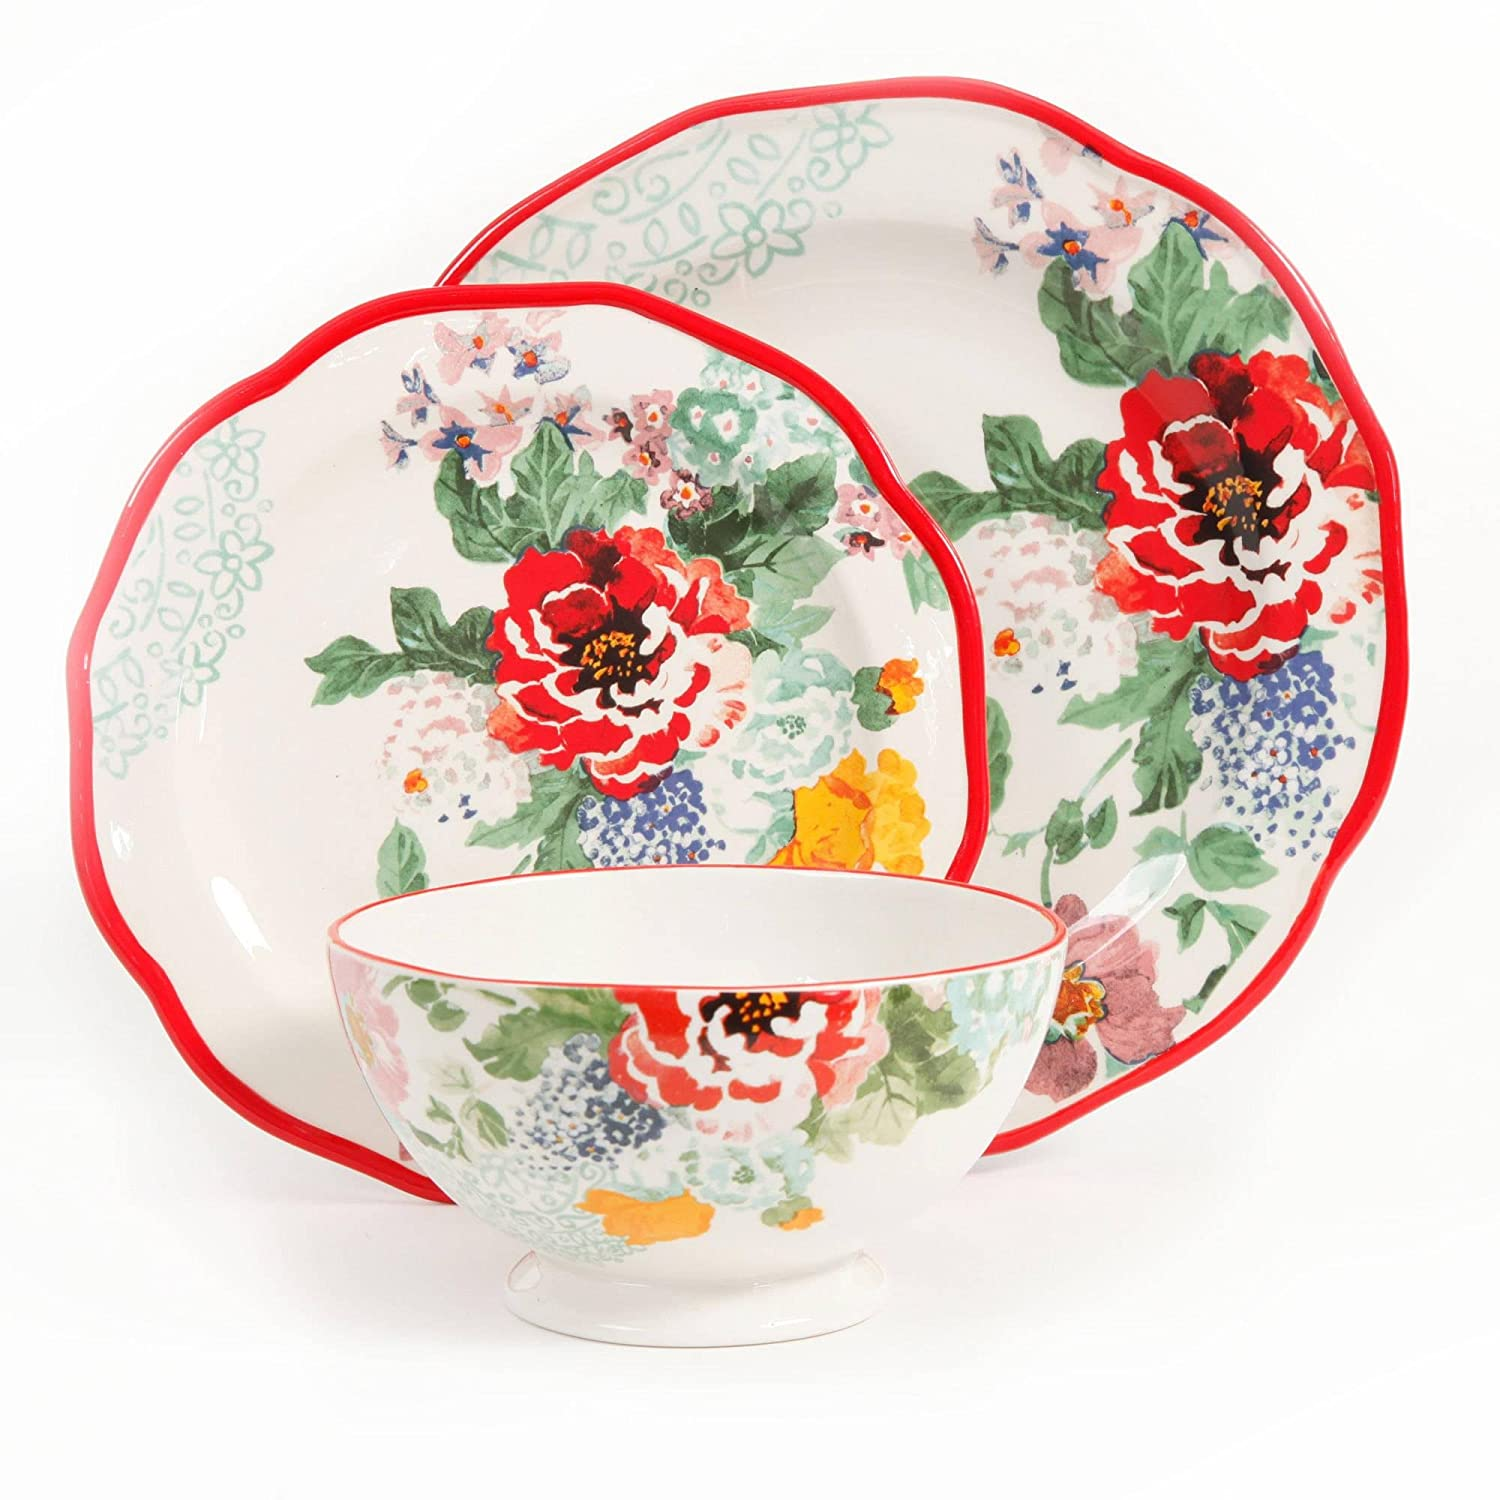 Amazon.com | The Pioneer Woman 82709.12R Country Garden 12-Piece Decorated Dinnerware Set Dinnerware Sets  sc 1 st  Amazon.com & Amazon.com | The Pioneer Woman 82709.12R Country Garden 12-Piece ...